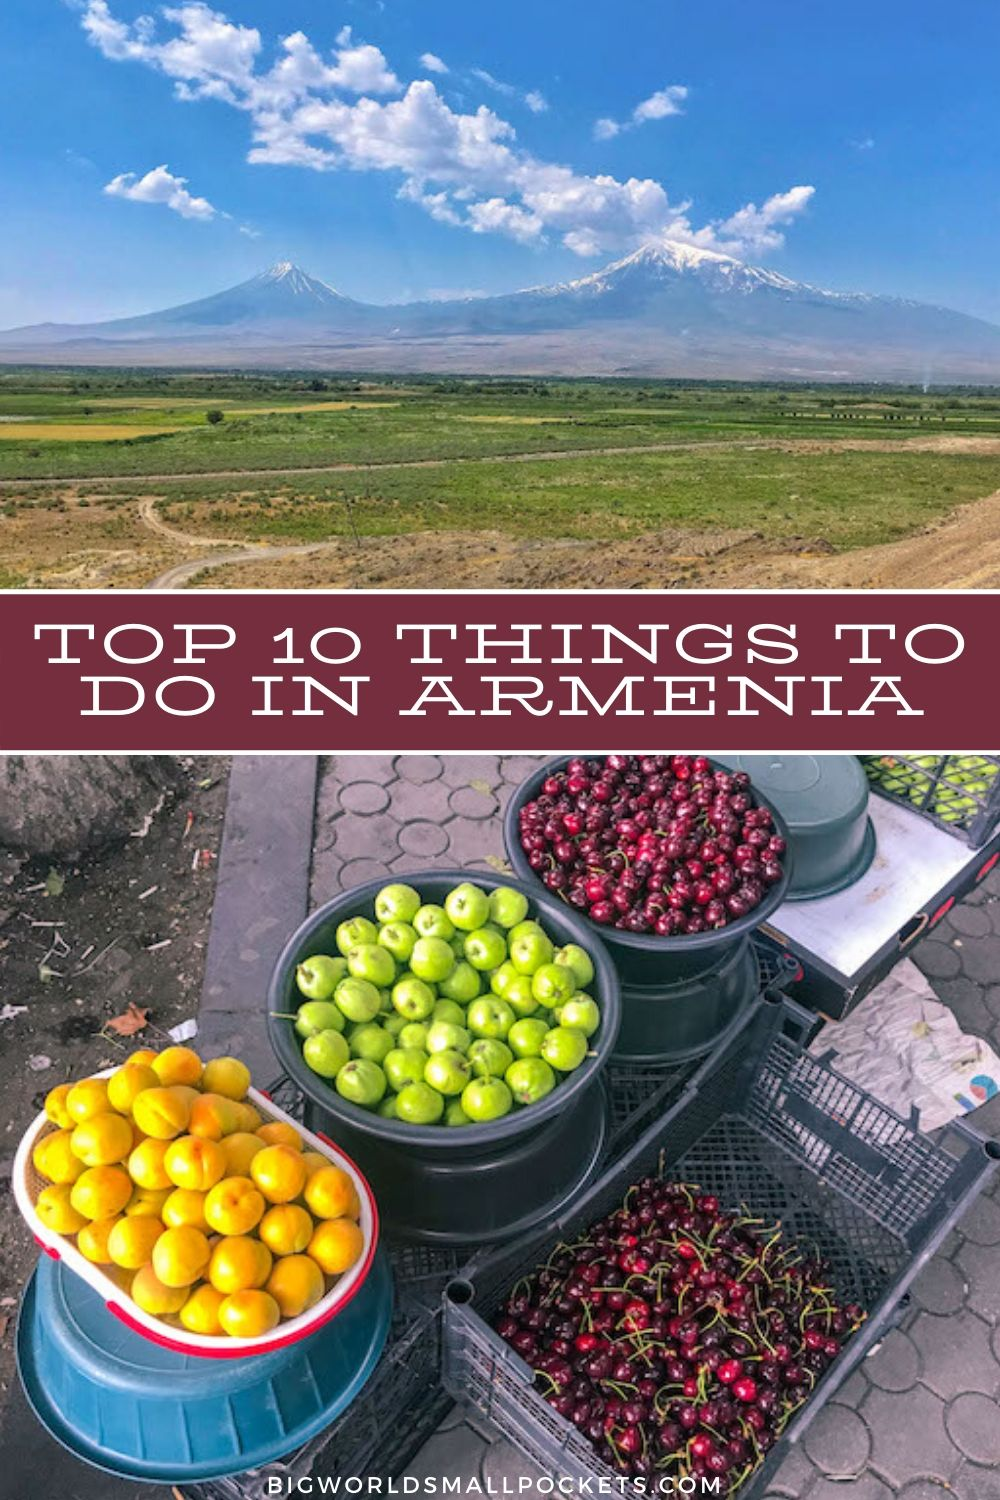 The Top 10 Things to Do in Armenia